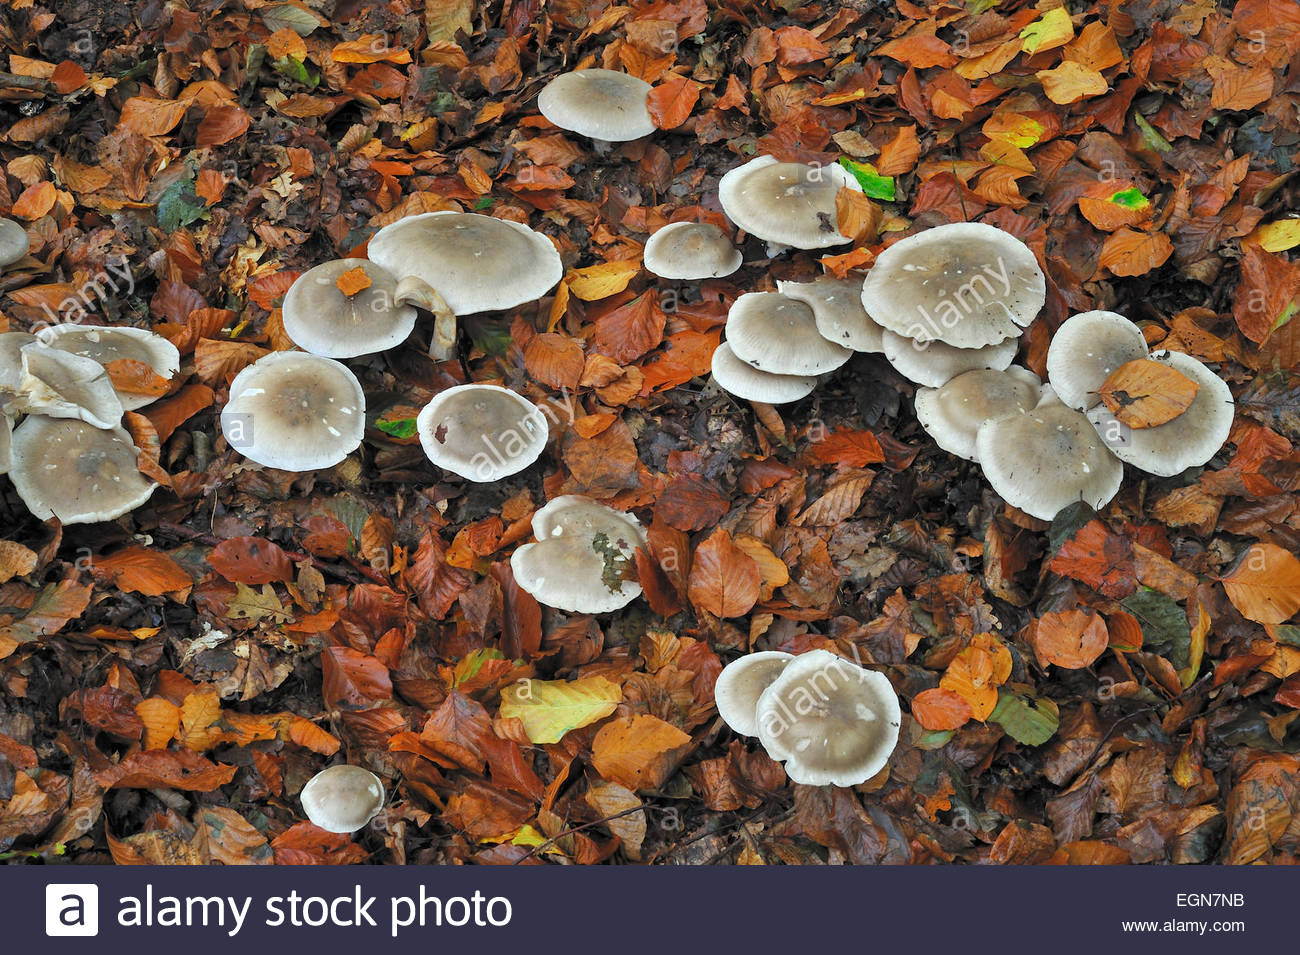 Fairy Ring Stock Photos & Fairy Ring Stock Images.